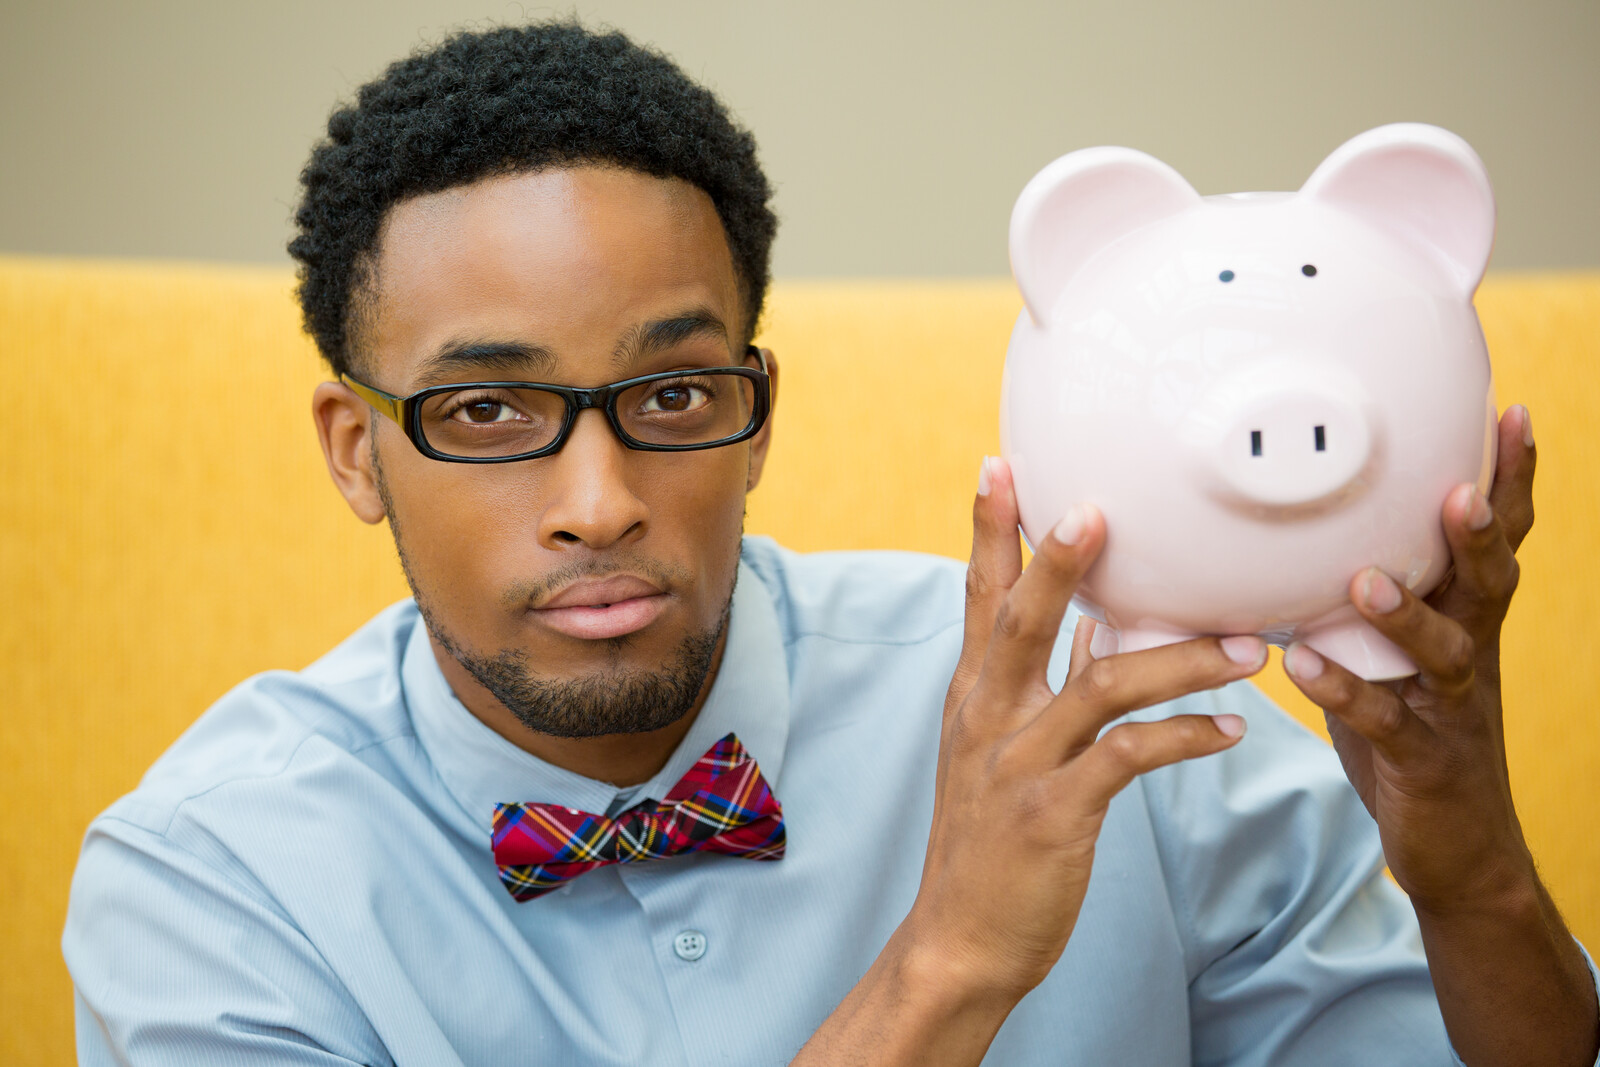 A man with glasses holding up a piggy bank